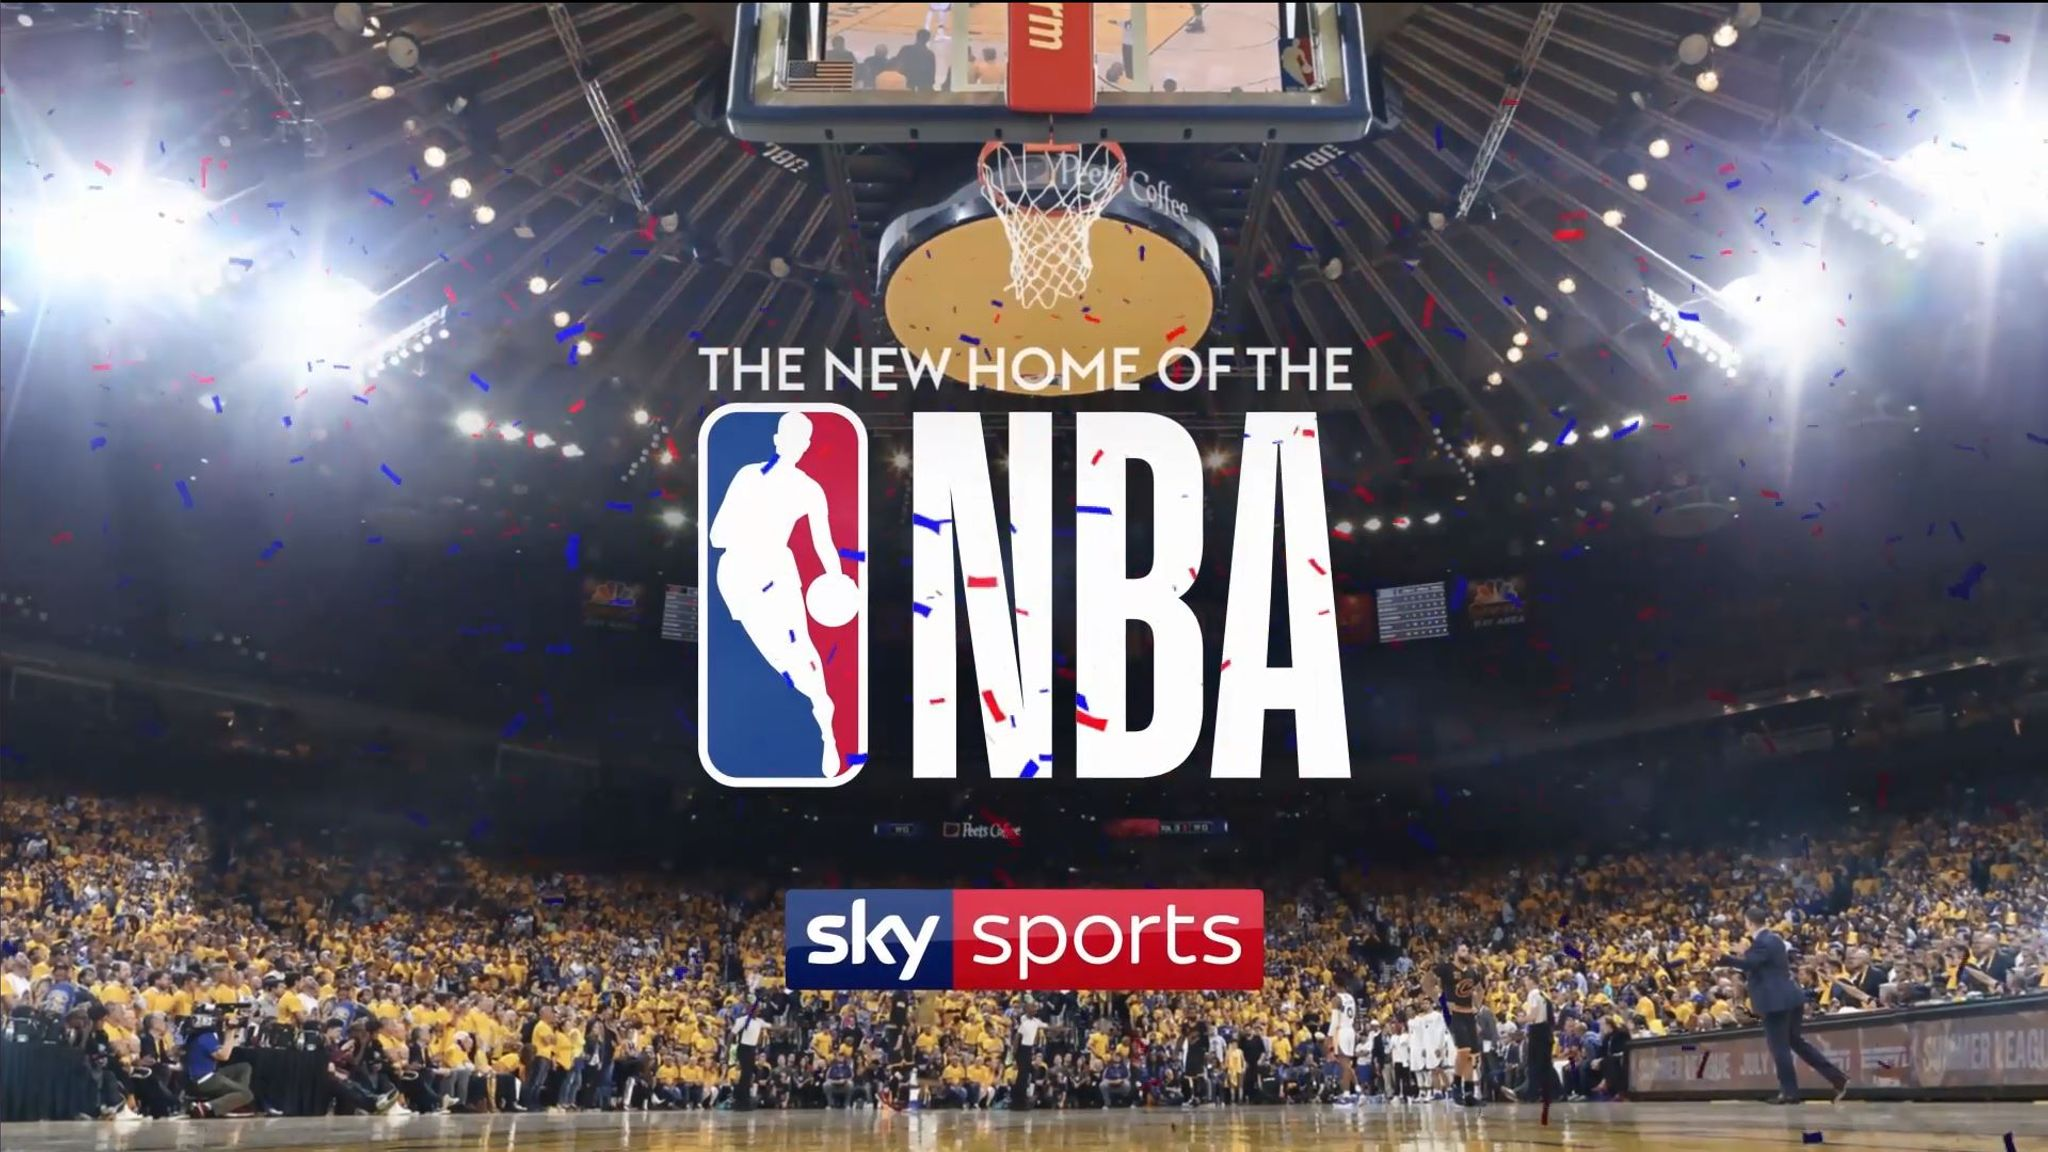 Sky Sports and NBA announce four-year broadcast and digital